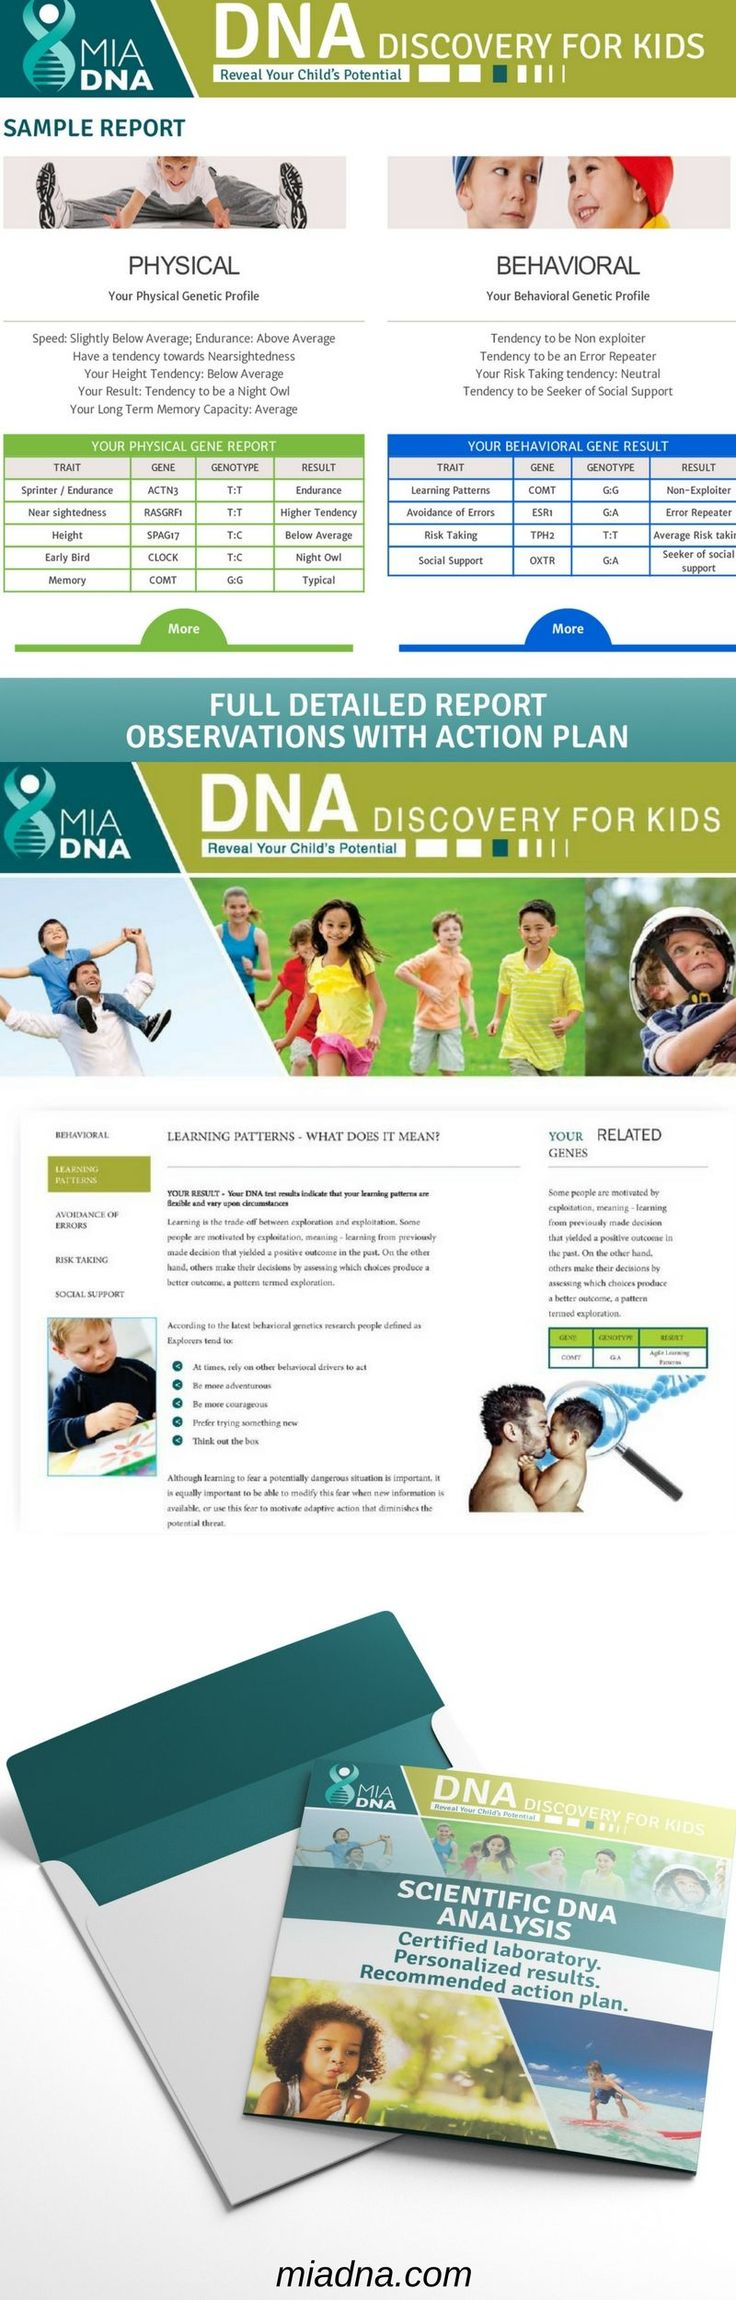 Mia DNA Tests for Fitness, Wellness, Nutrition and Children DNA Discovery. DNA test   DNA testing genealogy   DNA testing   DNA test kit   DNA test humor   Weight Loss DNA Testing   DNA testing   DNA Testing Choice   DNA testing   DNA Tested African Descendants